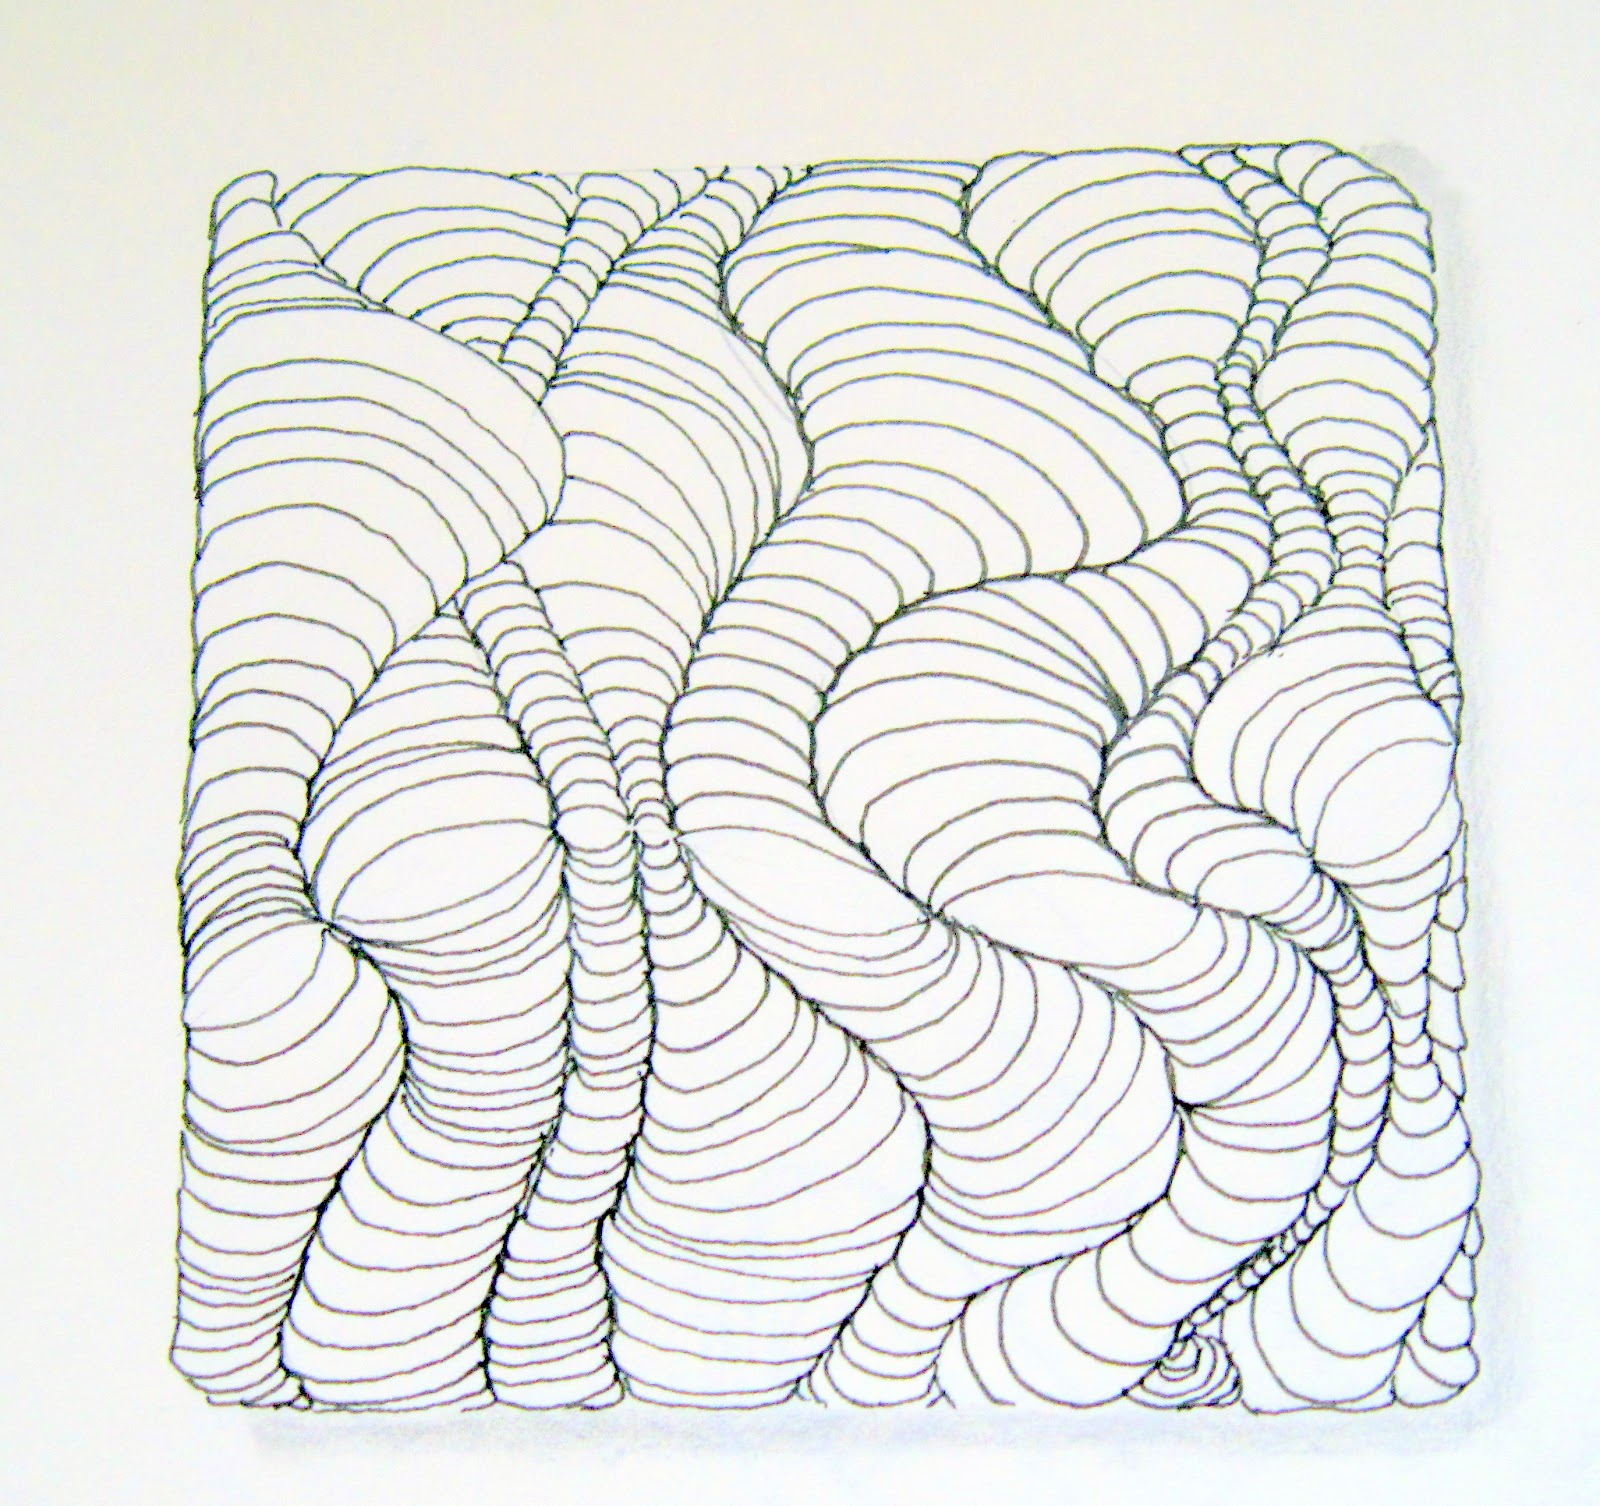 Zentangle Patterns Step By Step Printable Zentangle patterns step by